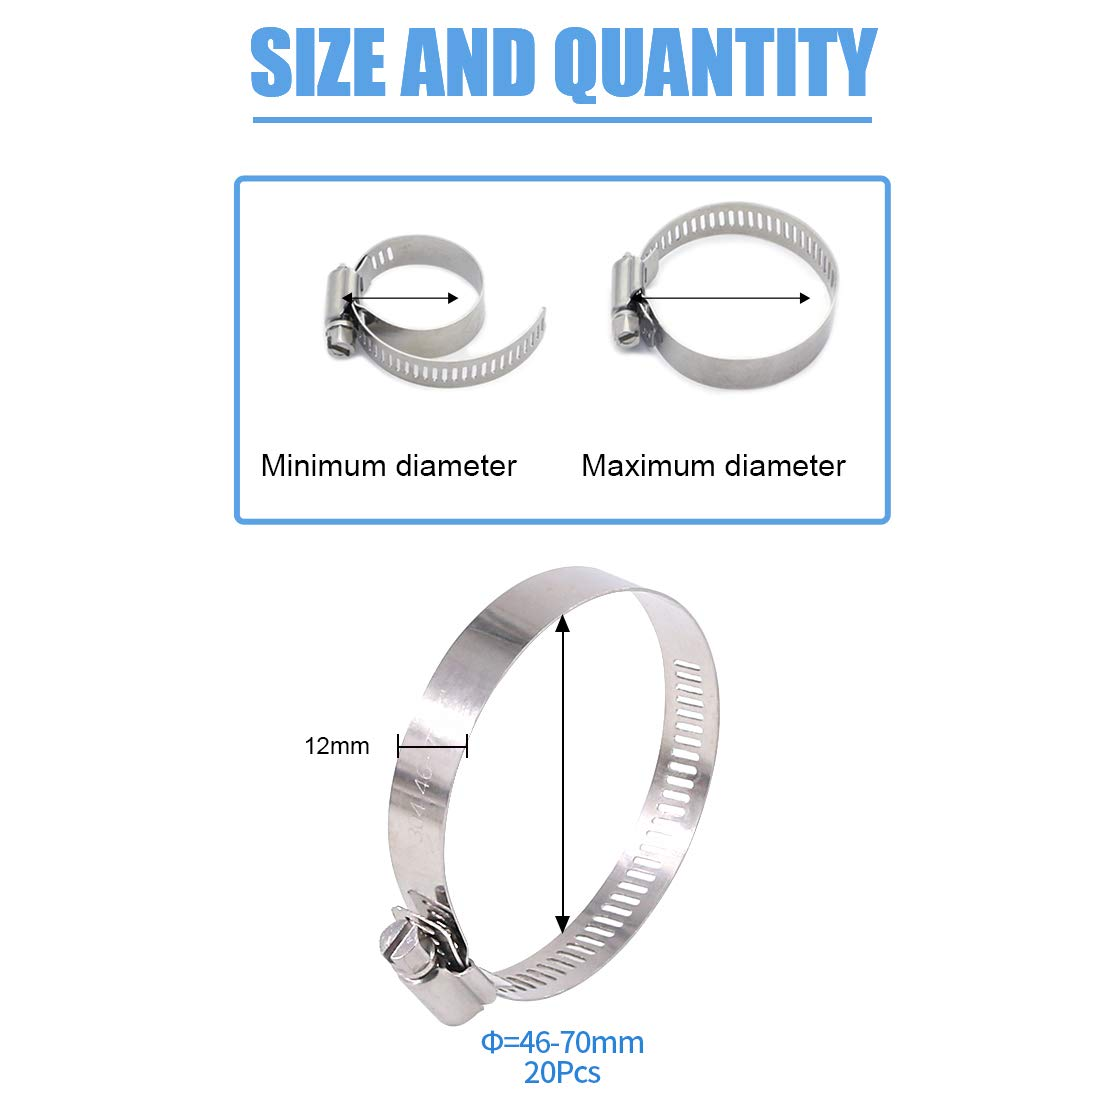 Fuel Line Clamp for Water Pipe 27-51MM Glarks 20Pcs 304 Stainless Steel Adjustable 27-51MM Range Worm Gear Hose Clamps Assortment Kit Plumbing Automotive and Mechanical Application